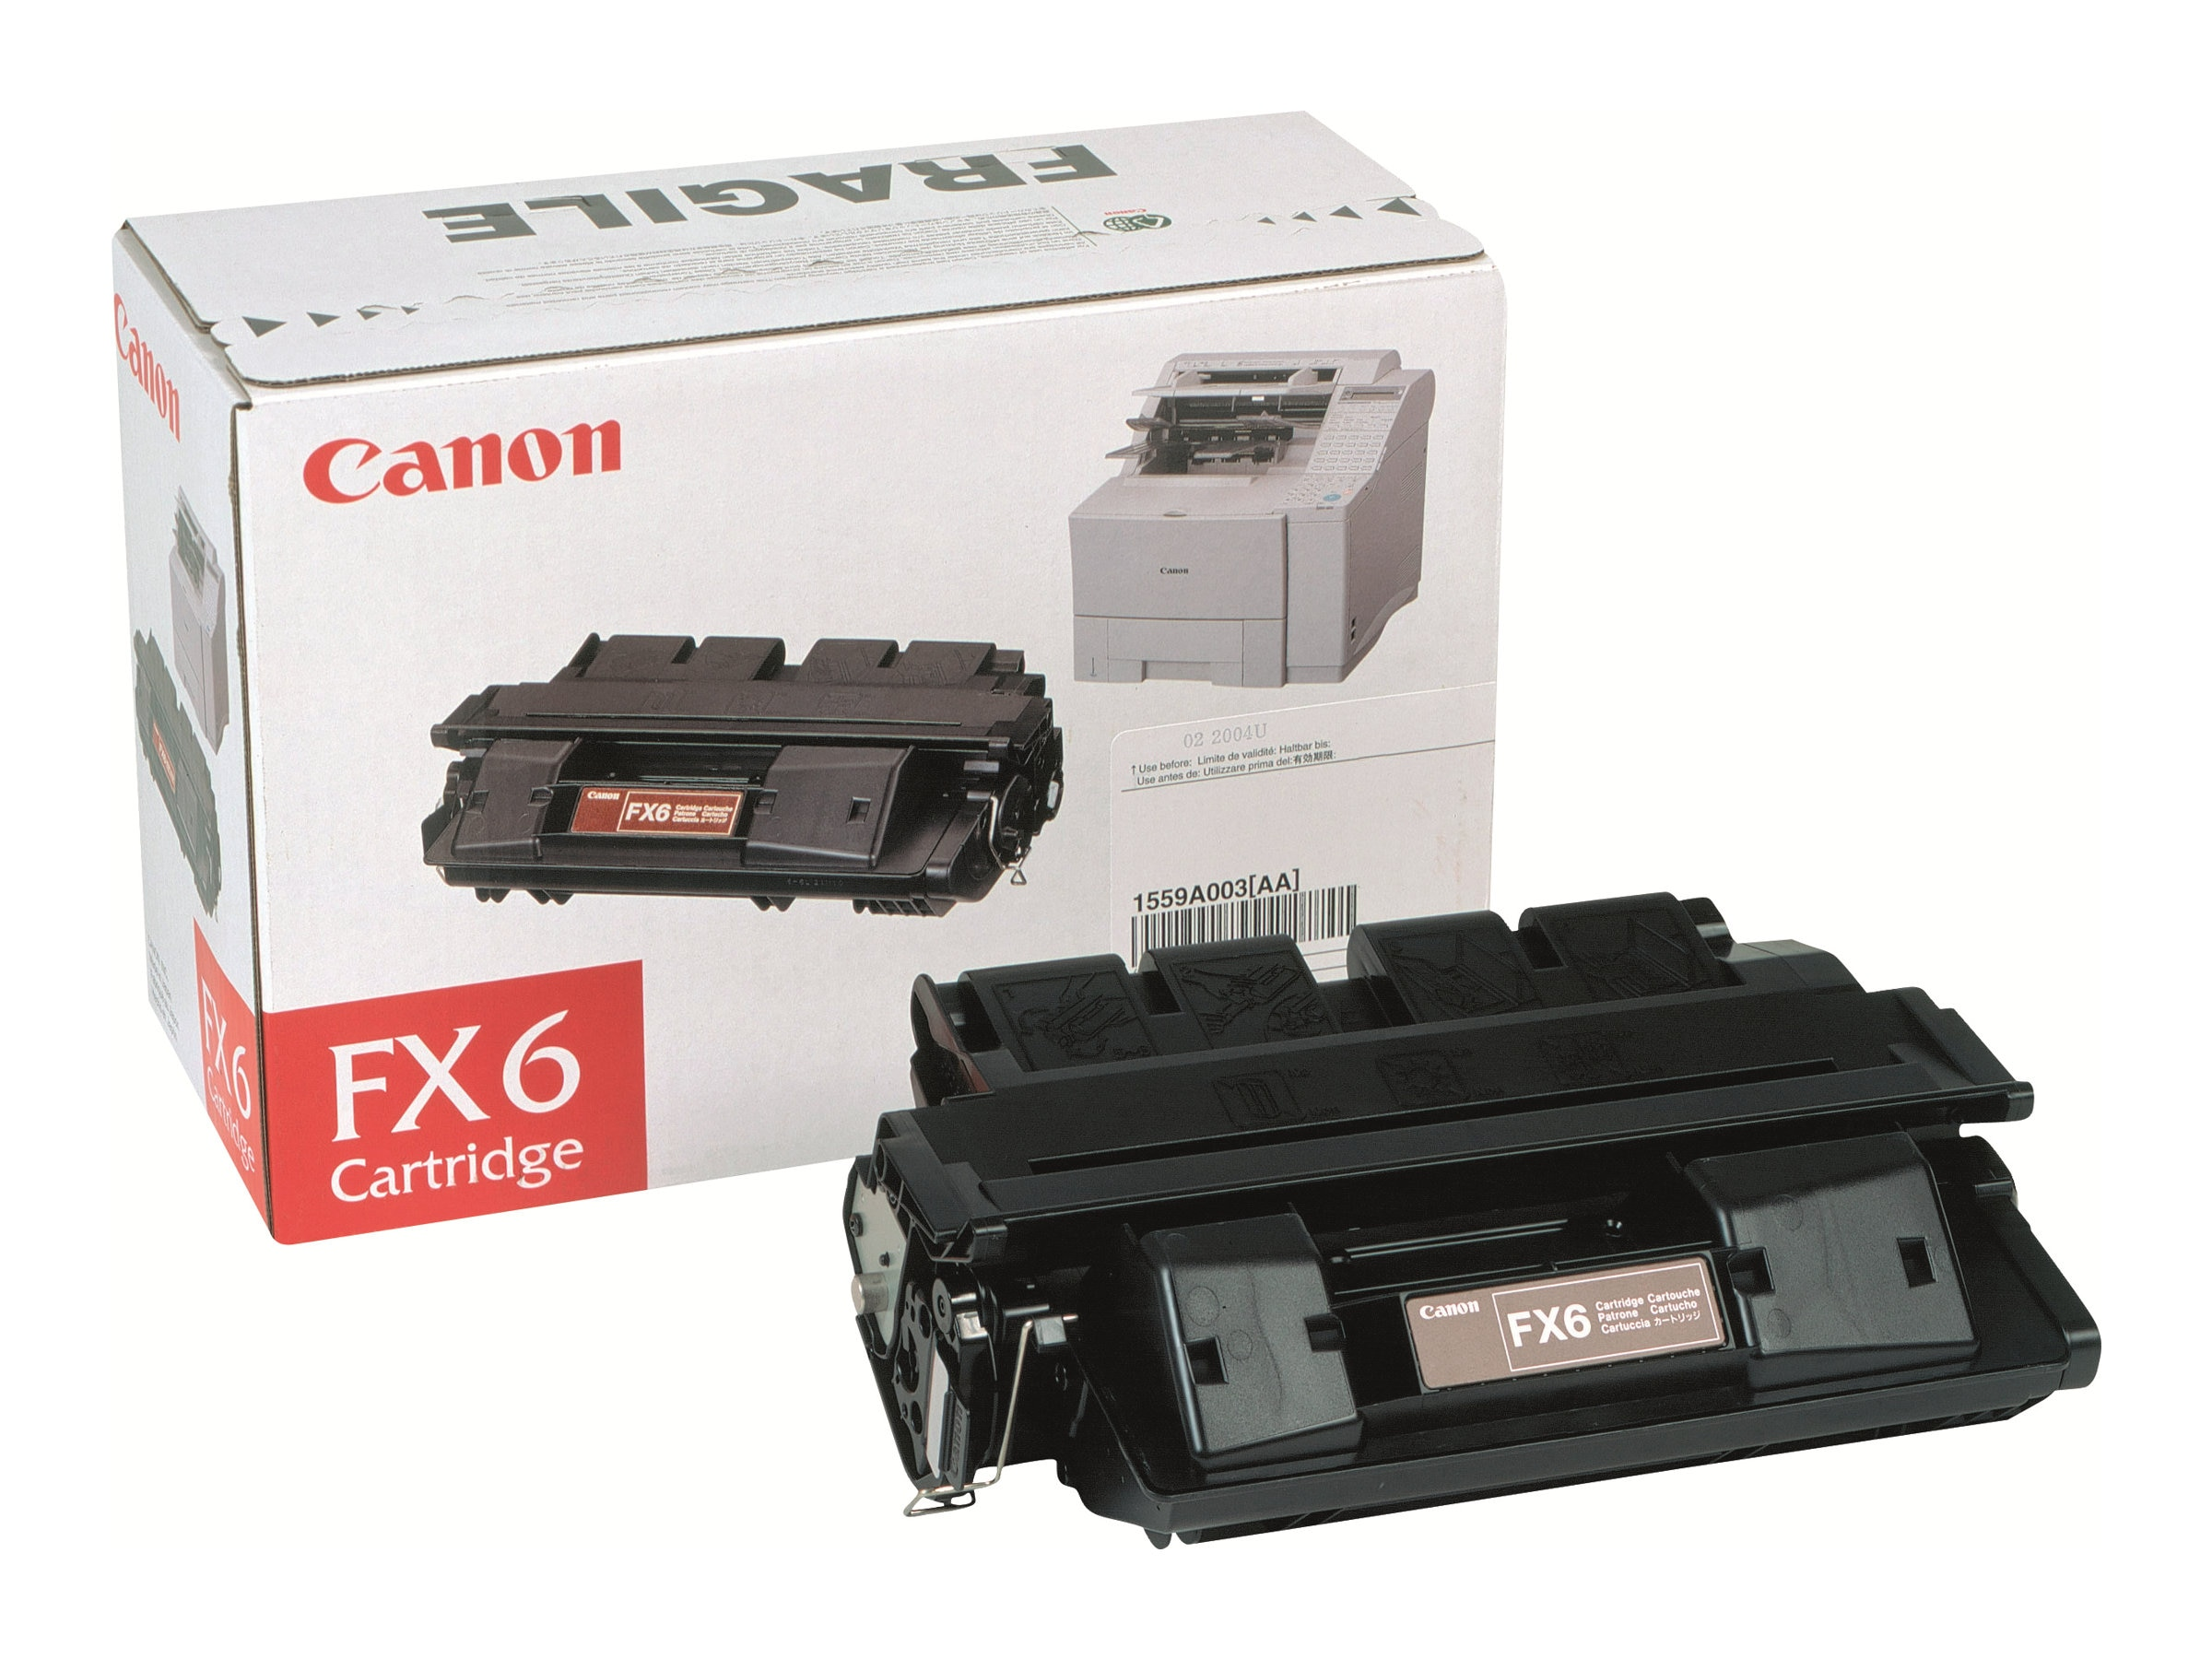 Canon Black FX-6 Toner Cartridge for Laser Class 3170 3175 Series Fax Machines